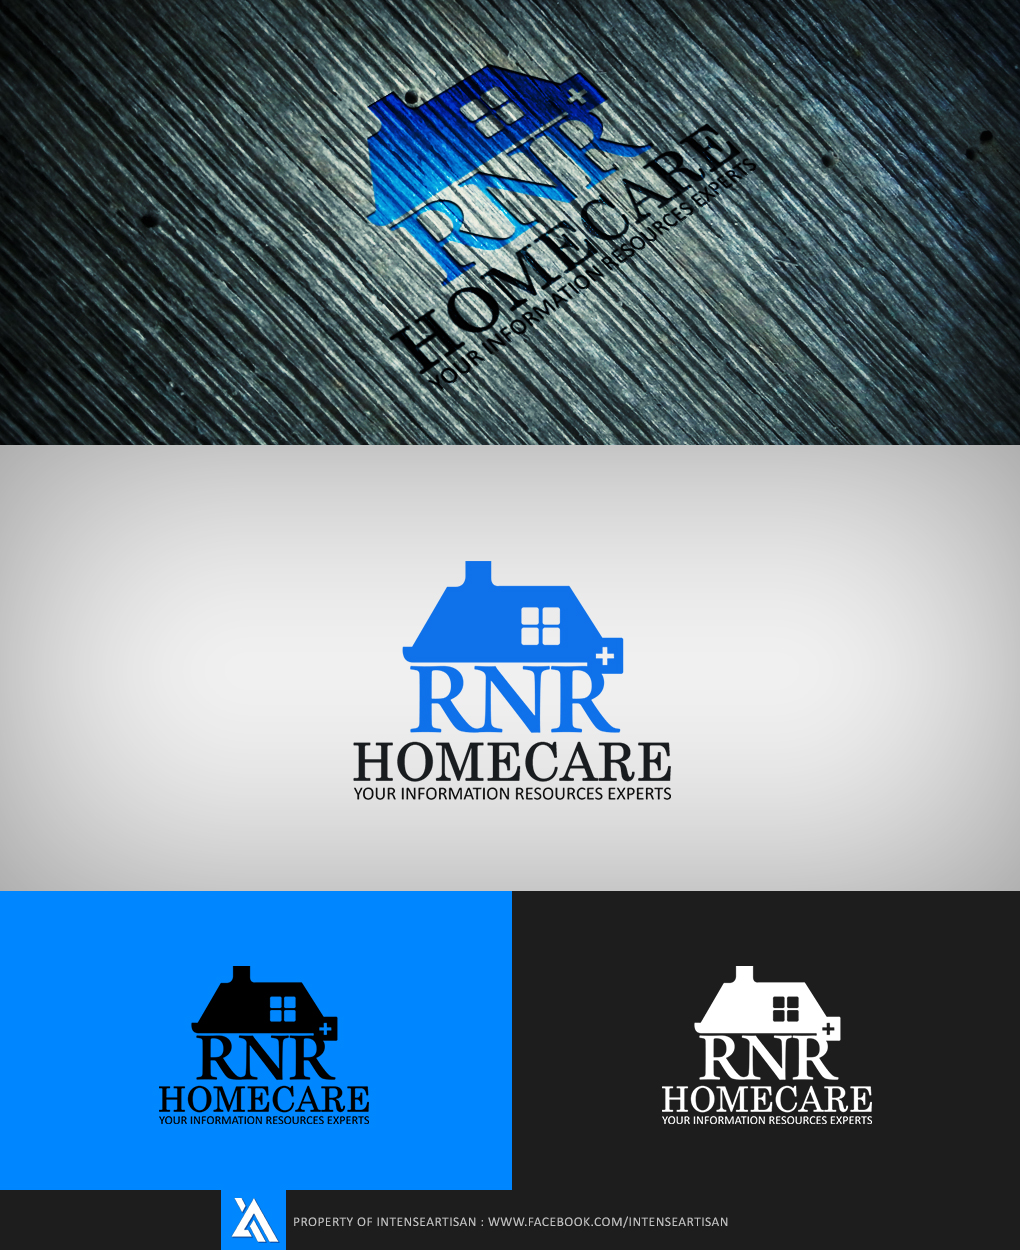 Logo Design by Virgilio Pineda III - Entry No. 62 in the Logo Design Contest Imaginative Logo Design for RNR HomeCare.